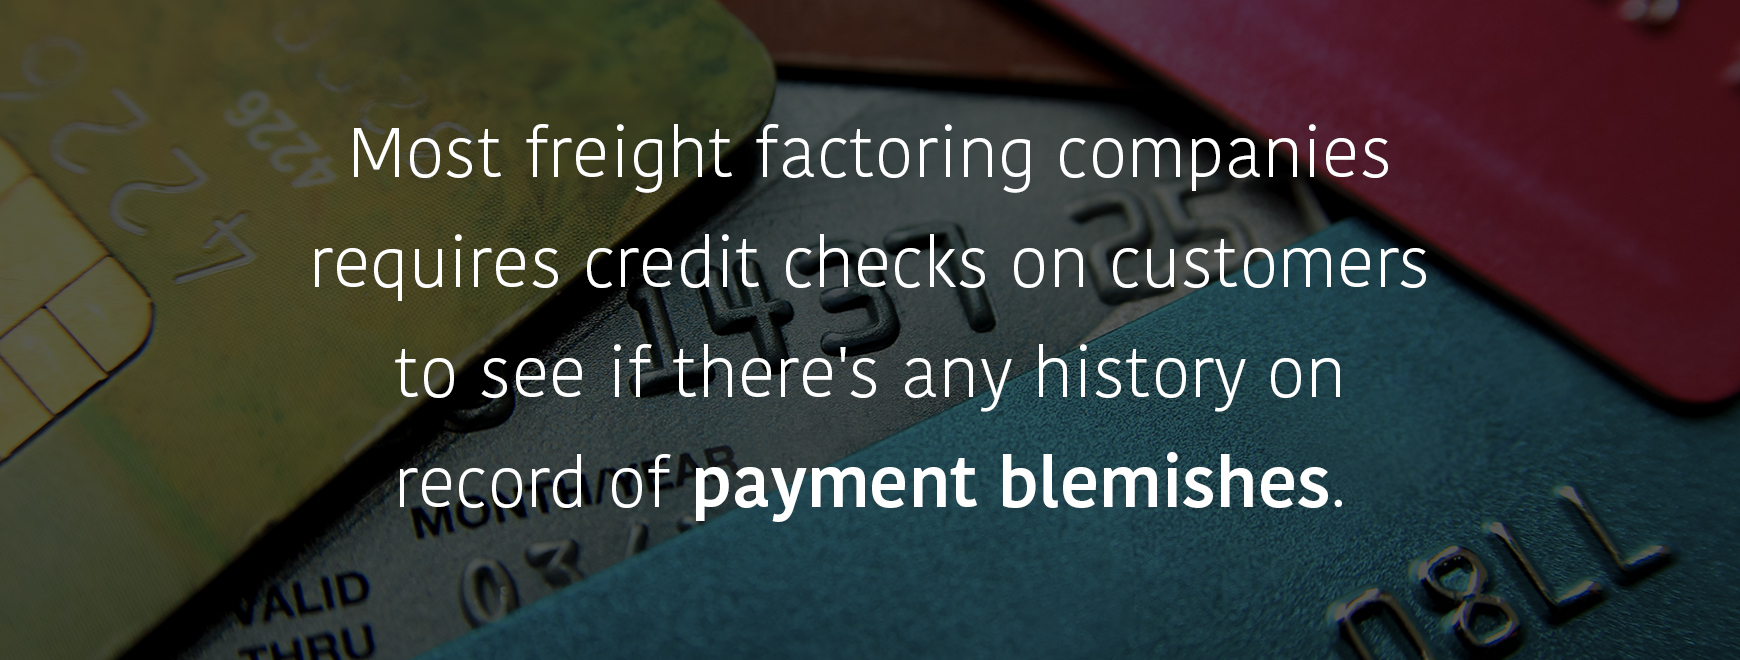 freight-factoring-credit-checks